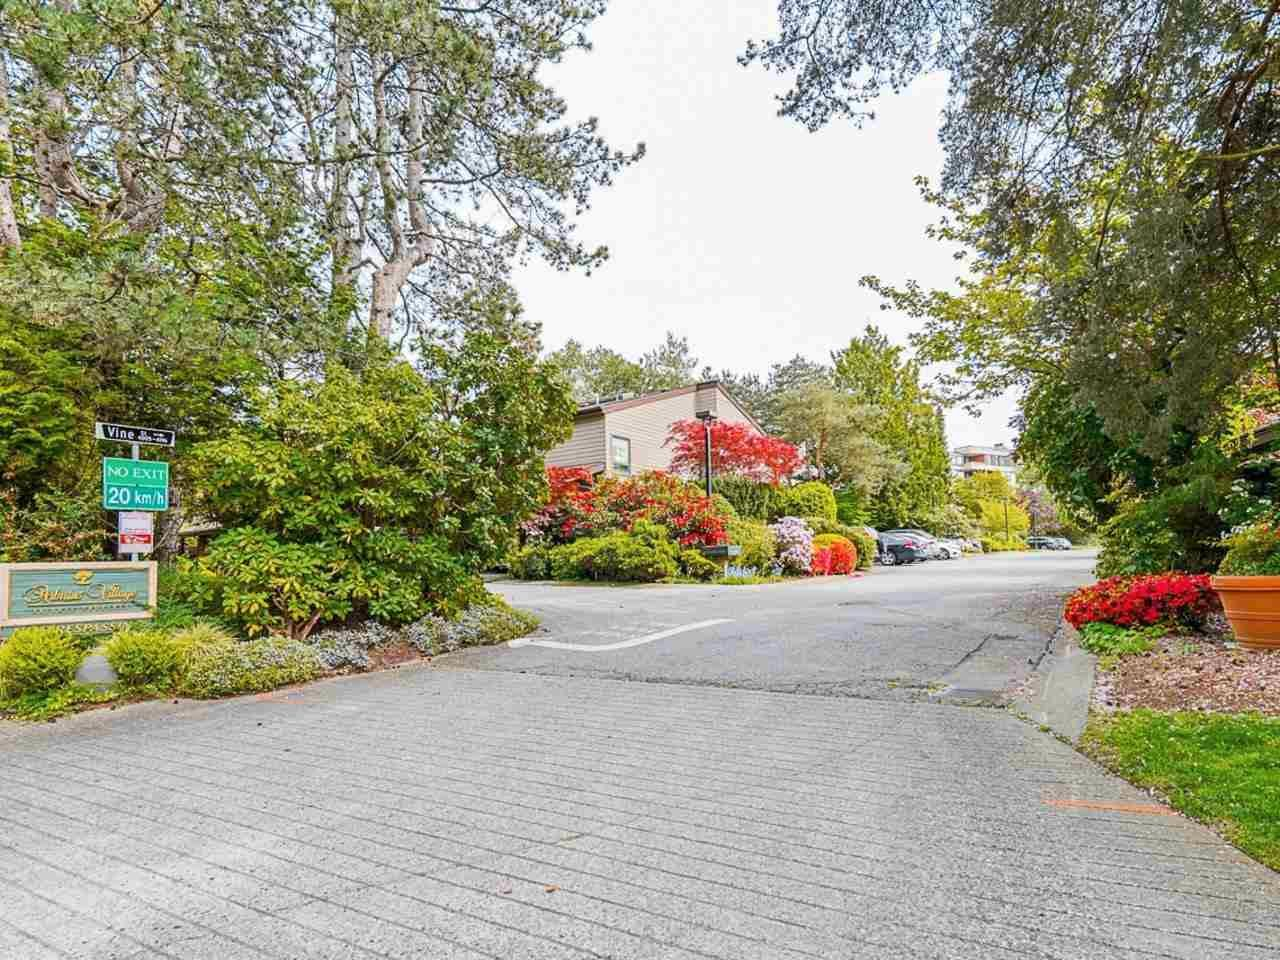 """Main Photo: 4023 VINE Street in Vancouver: Quilchena Townhouse for sale in """"Arbutus Village"""" (Vancouver West)  : MLS®# R2585686"""